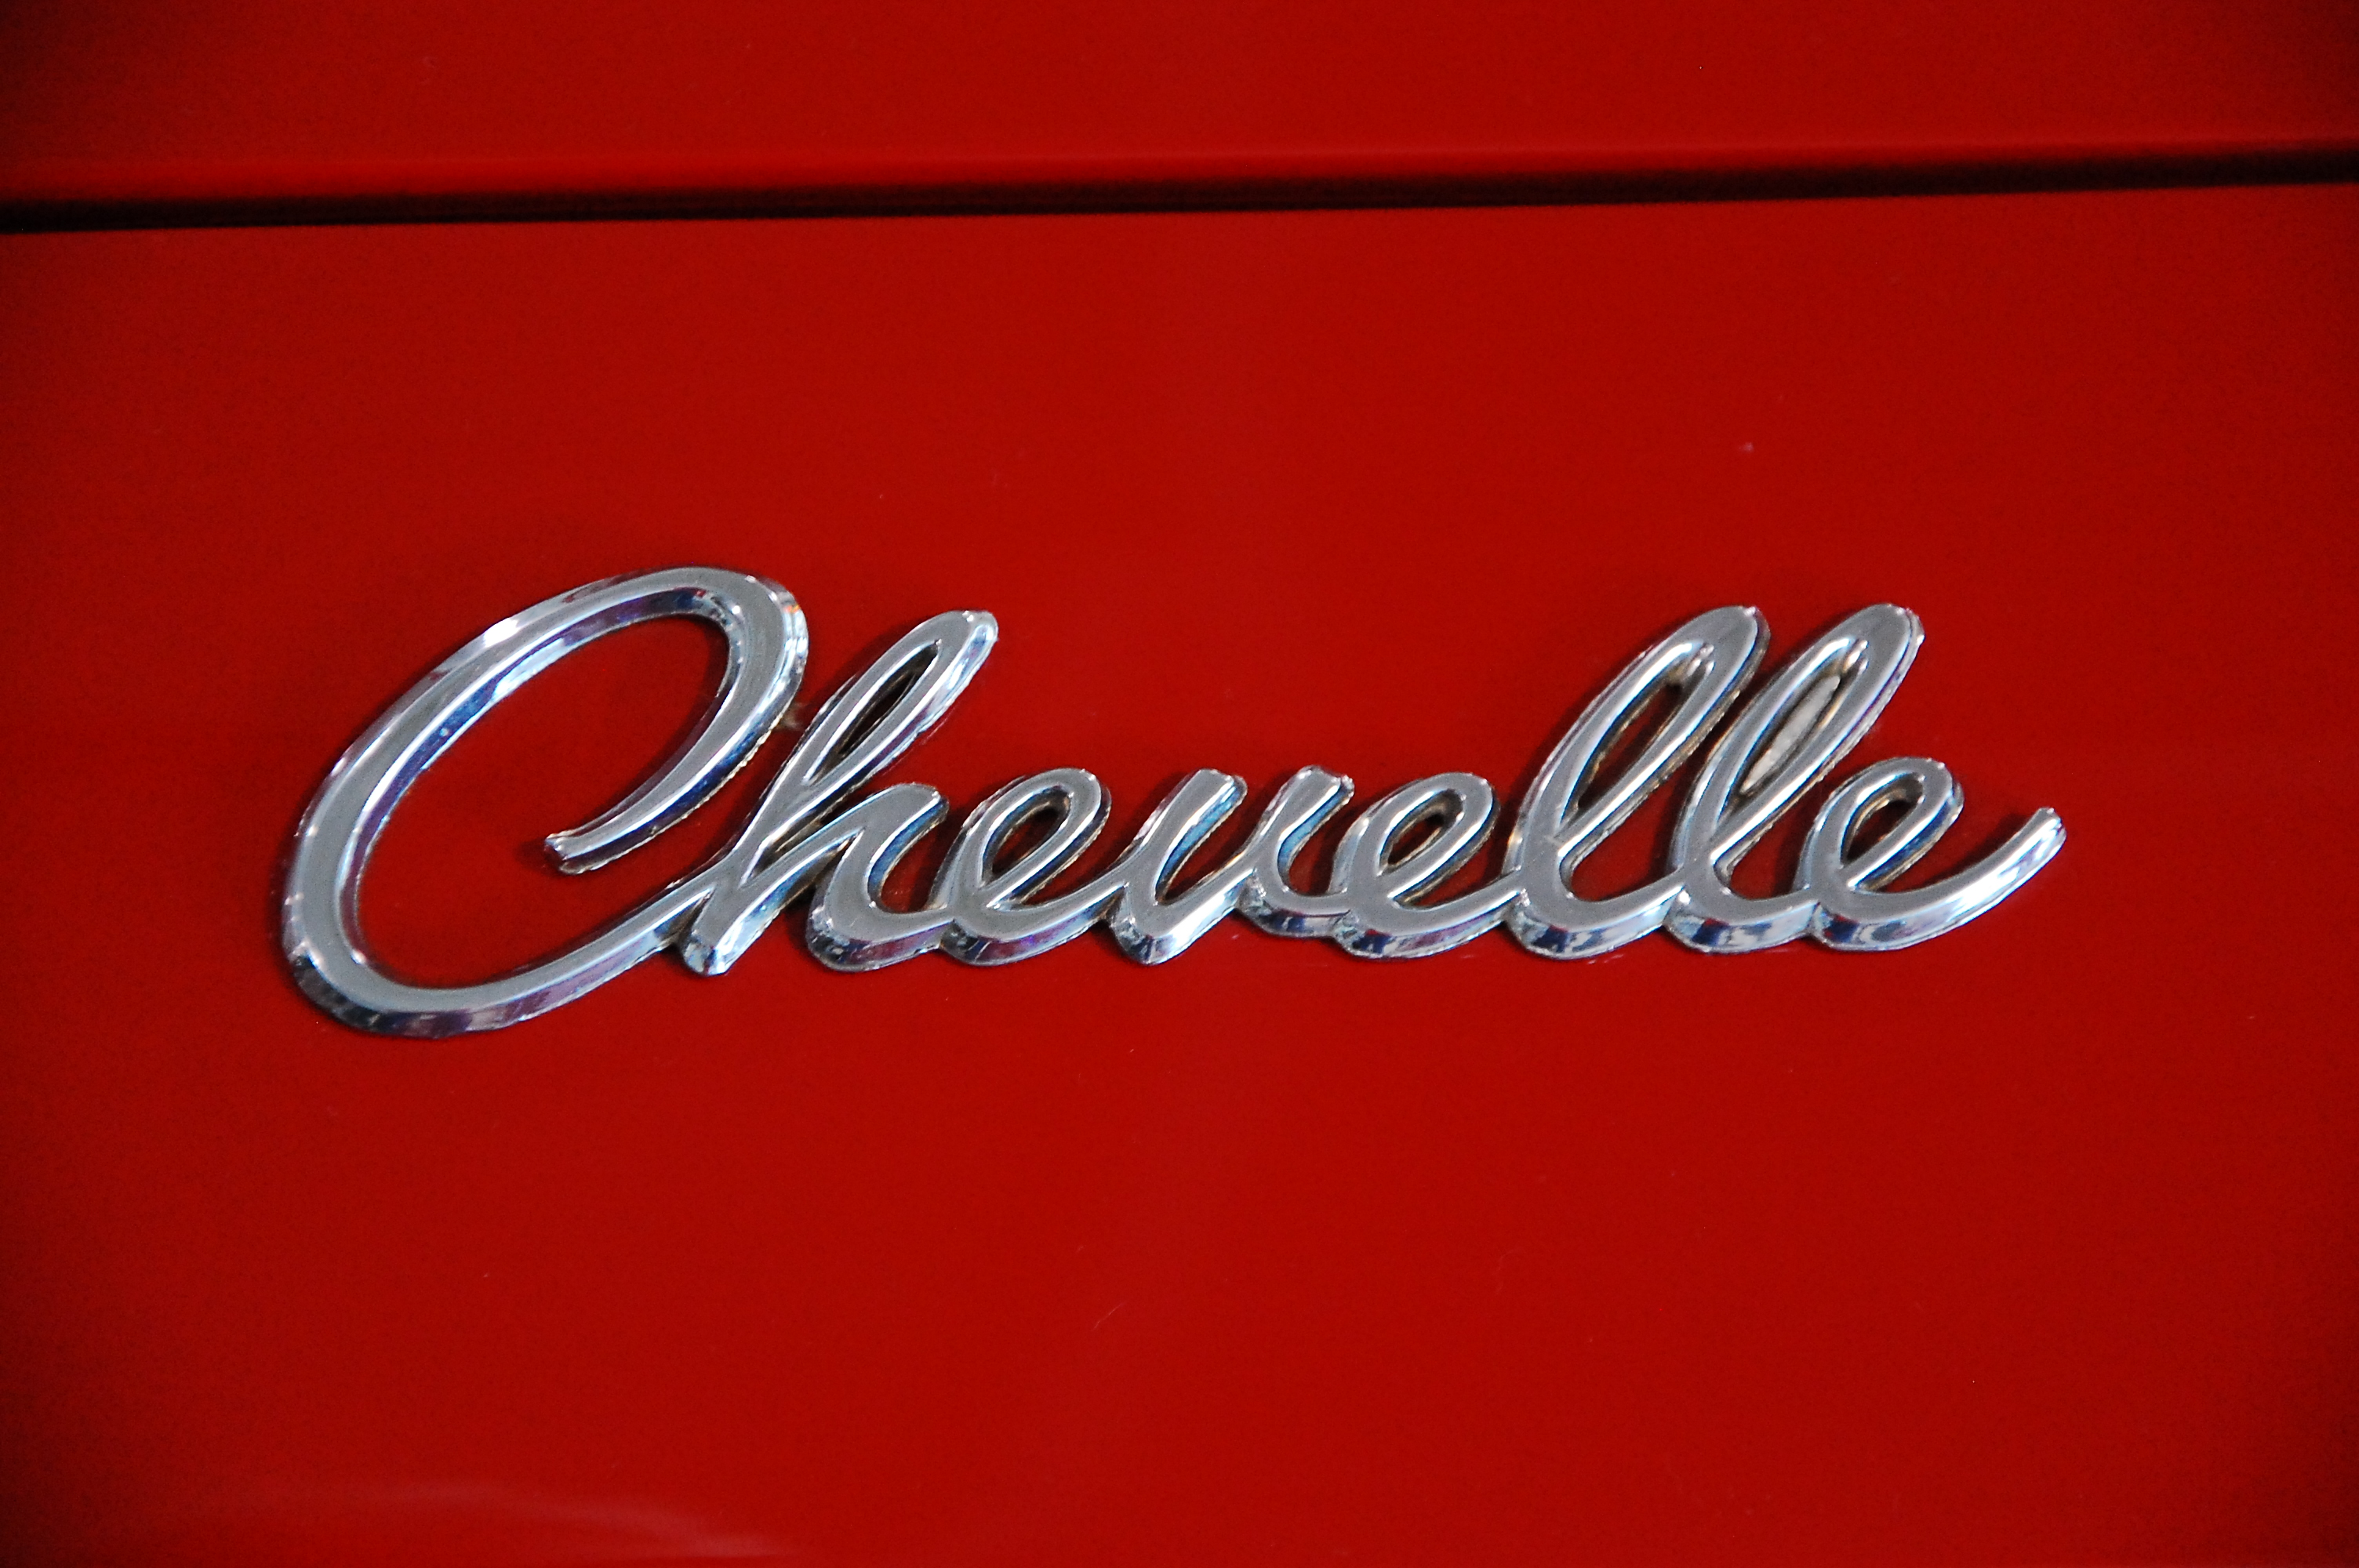 File:Chevelle logo.jpg...